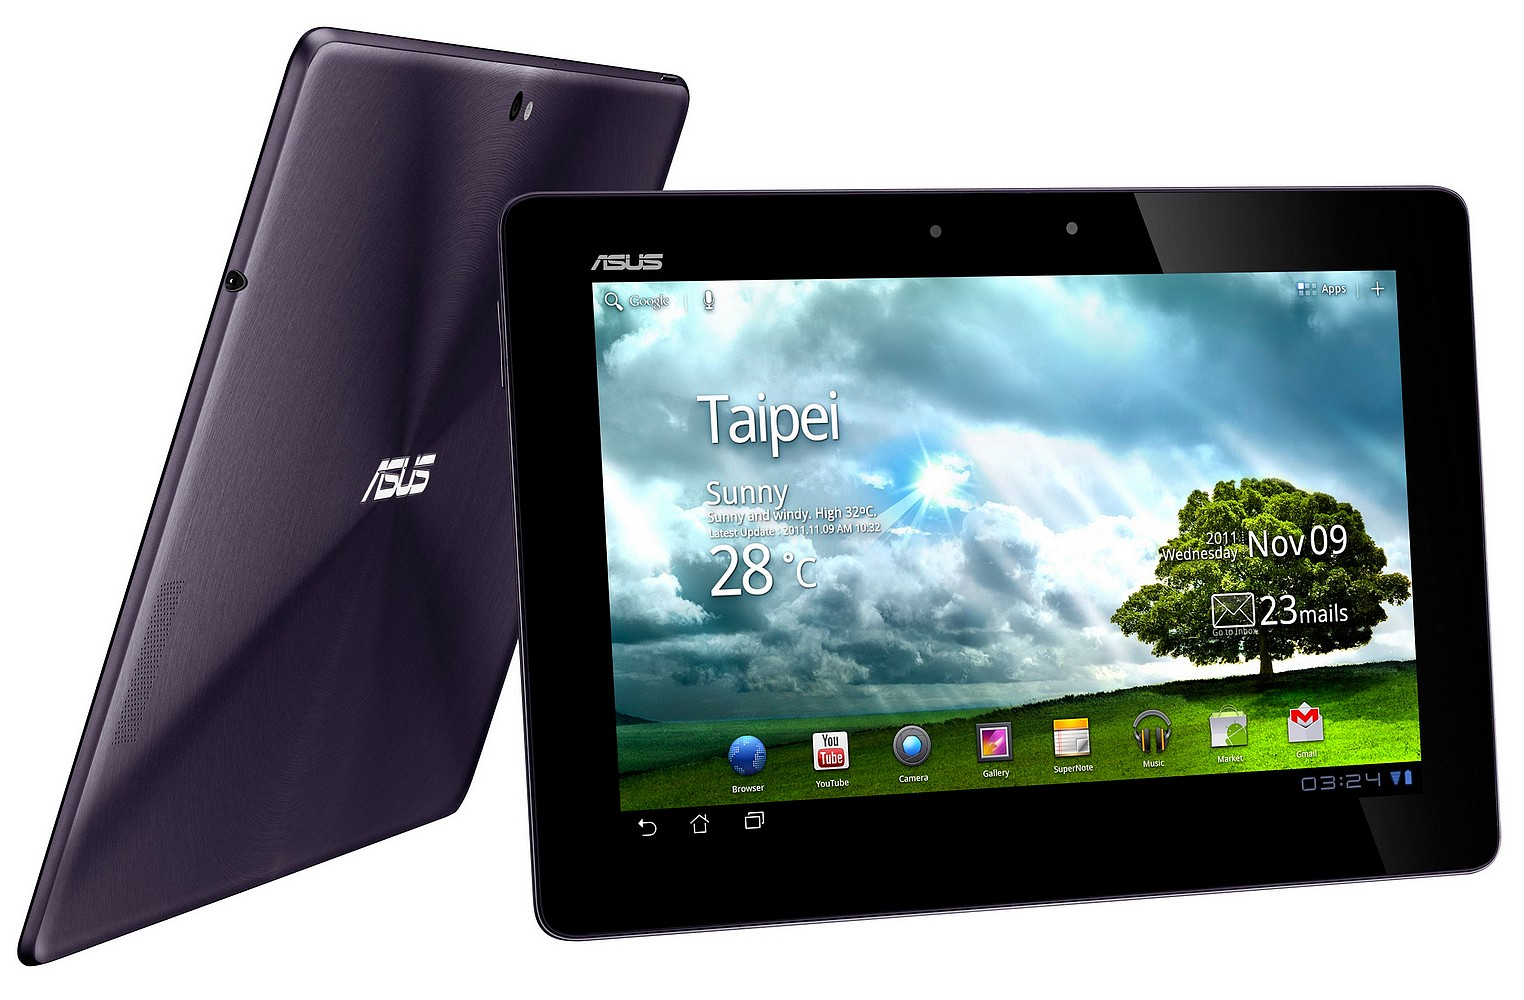 ASUS Transformer Prime are Android 4.0 ICS